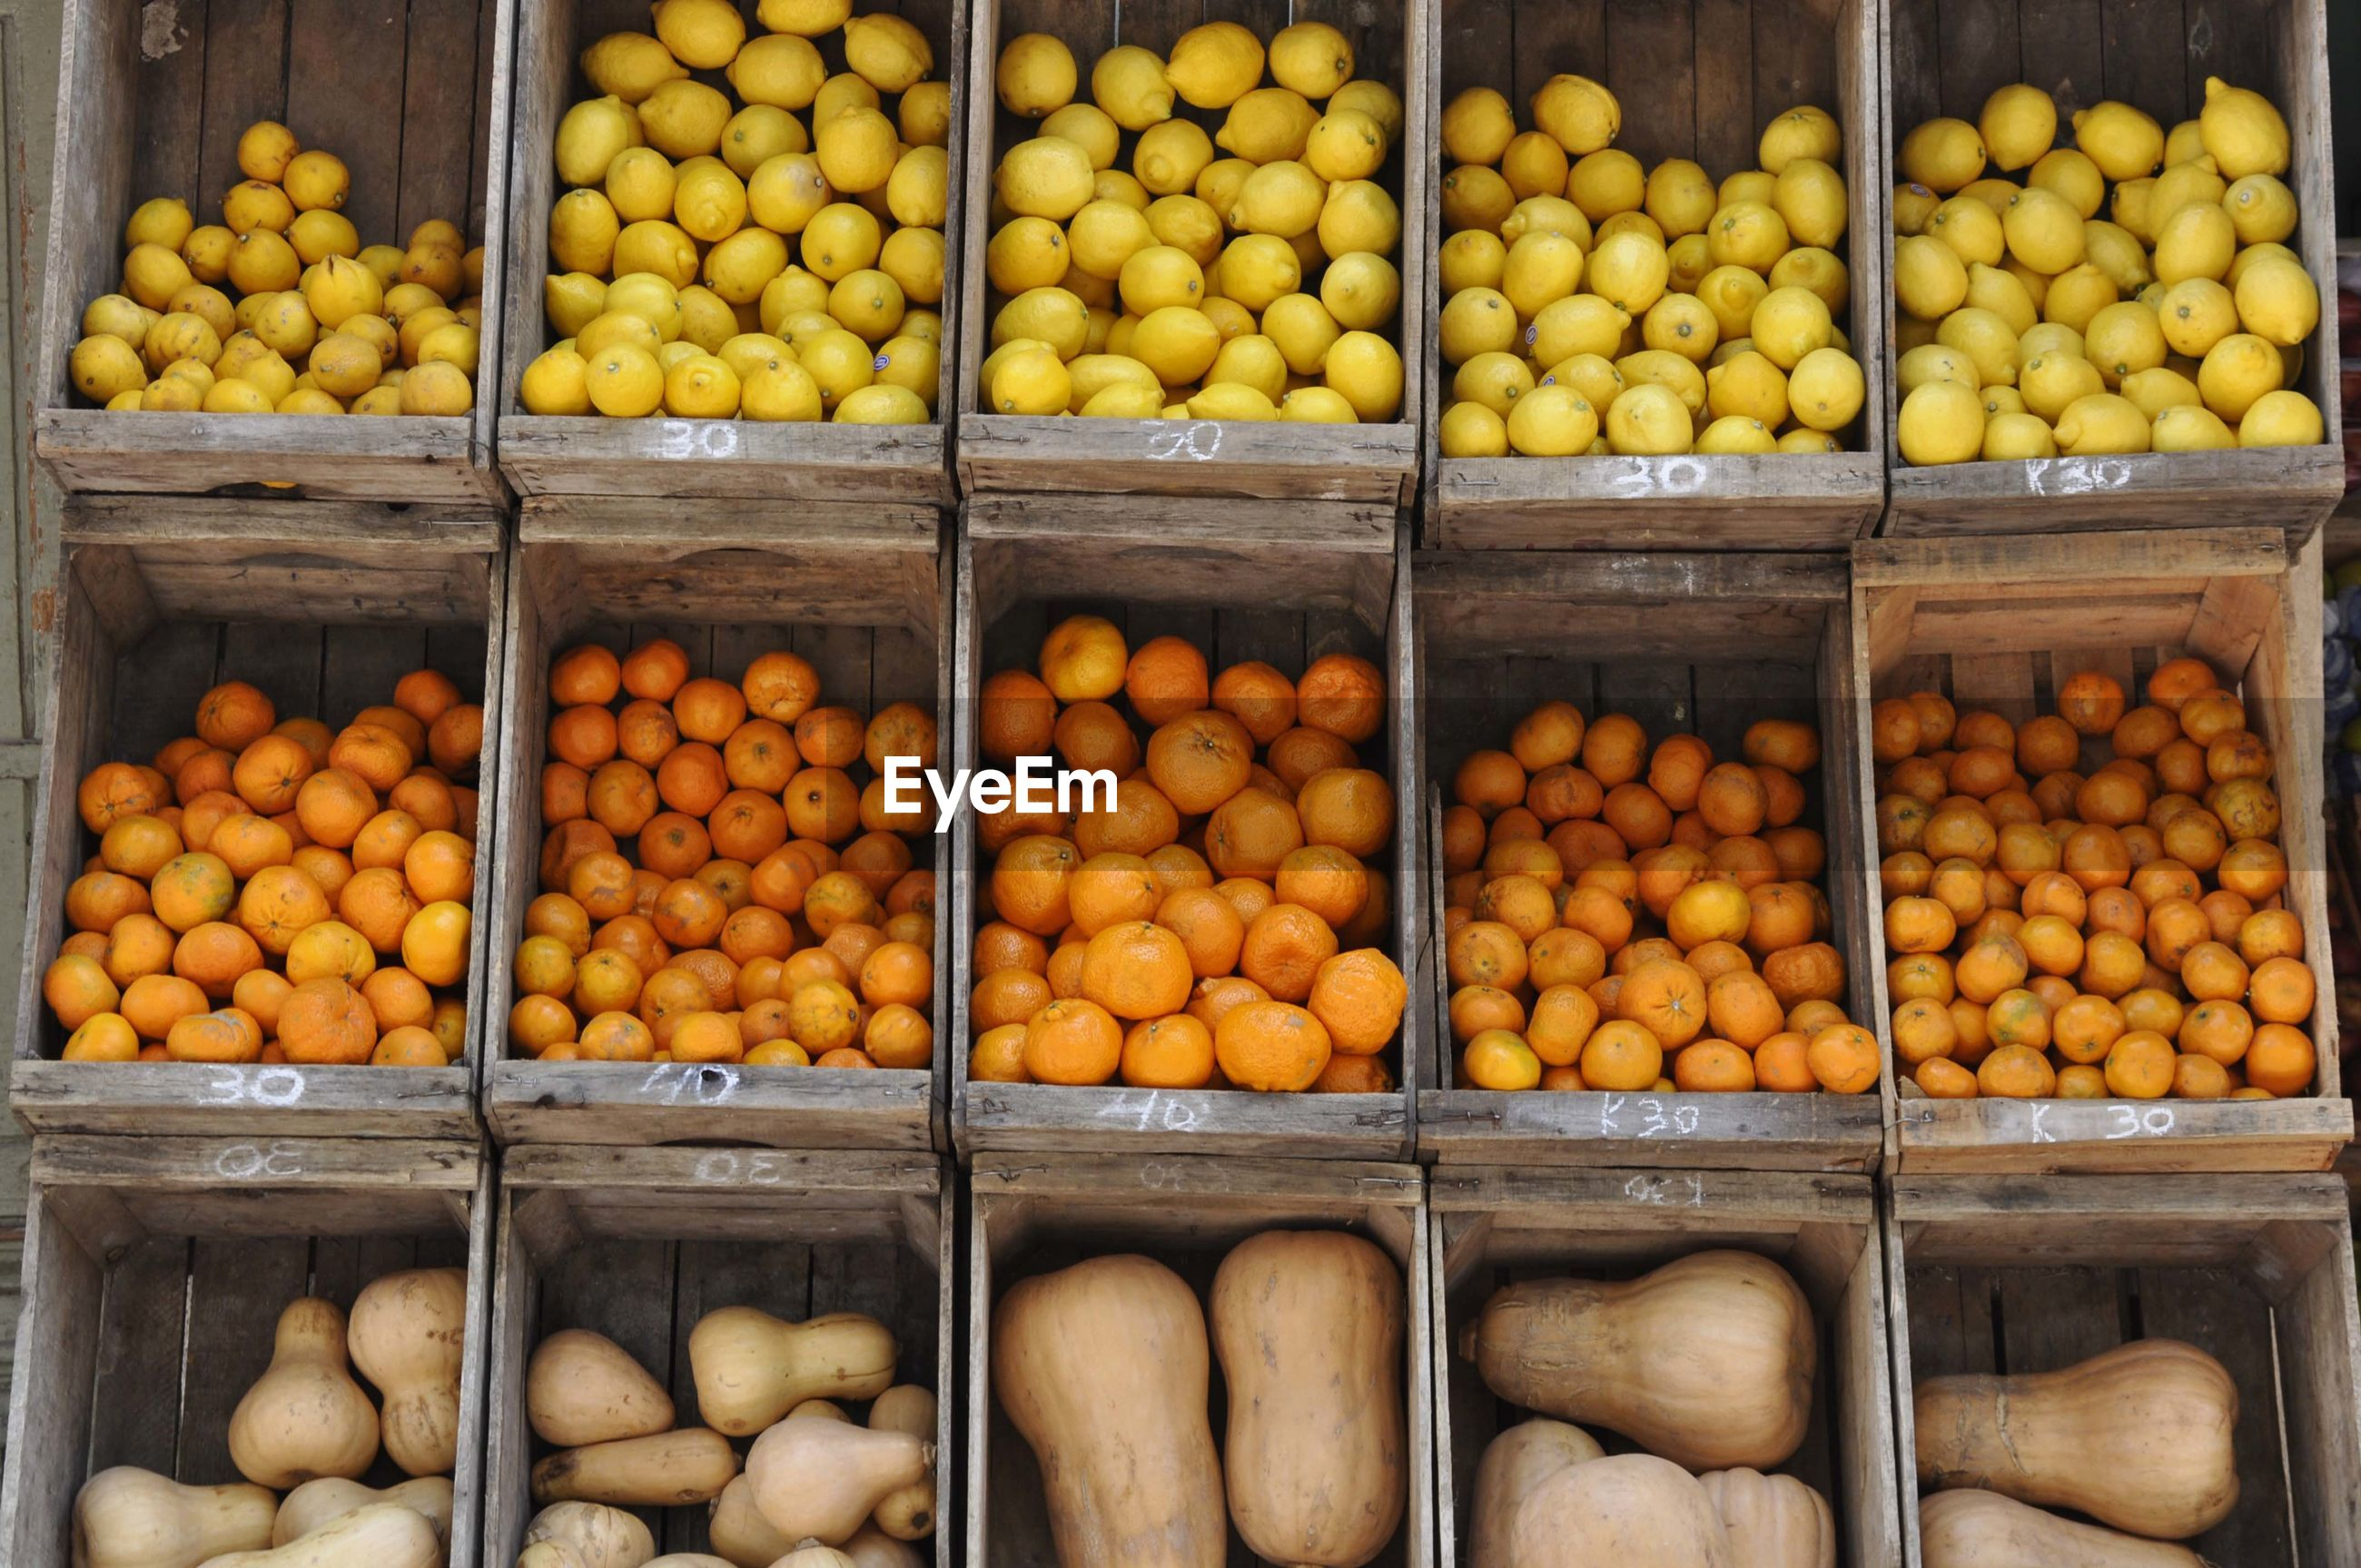 Various fruits for sale in market